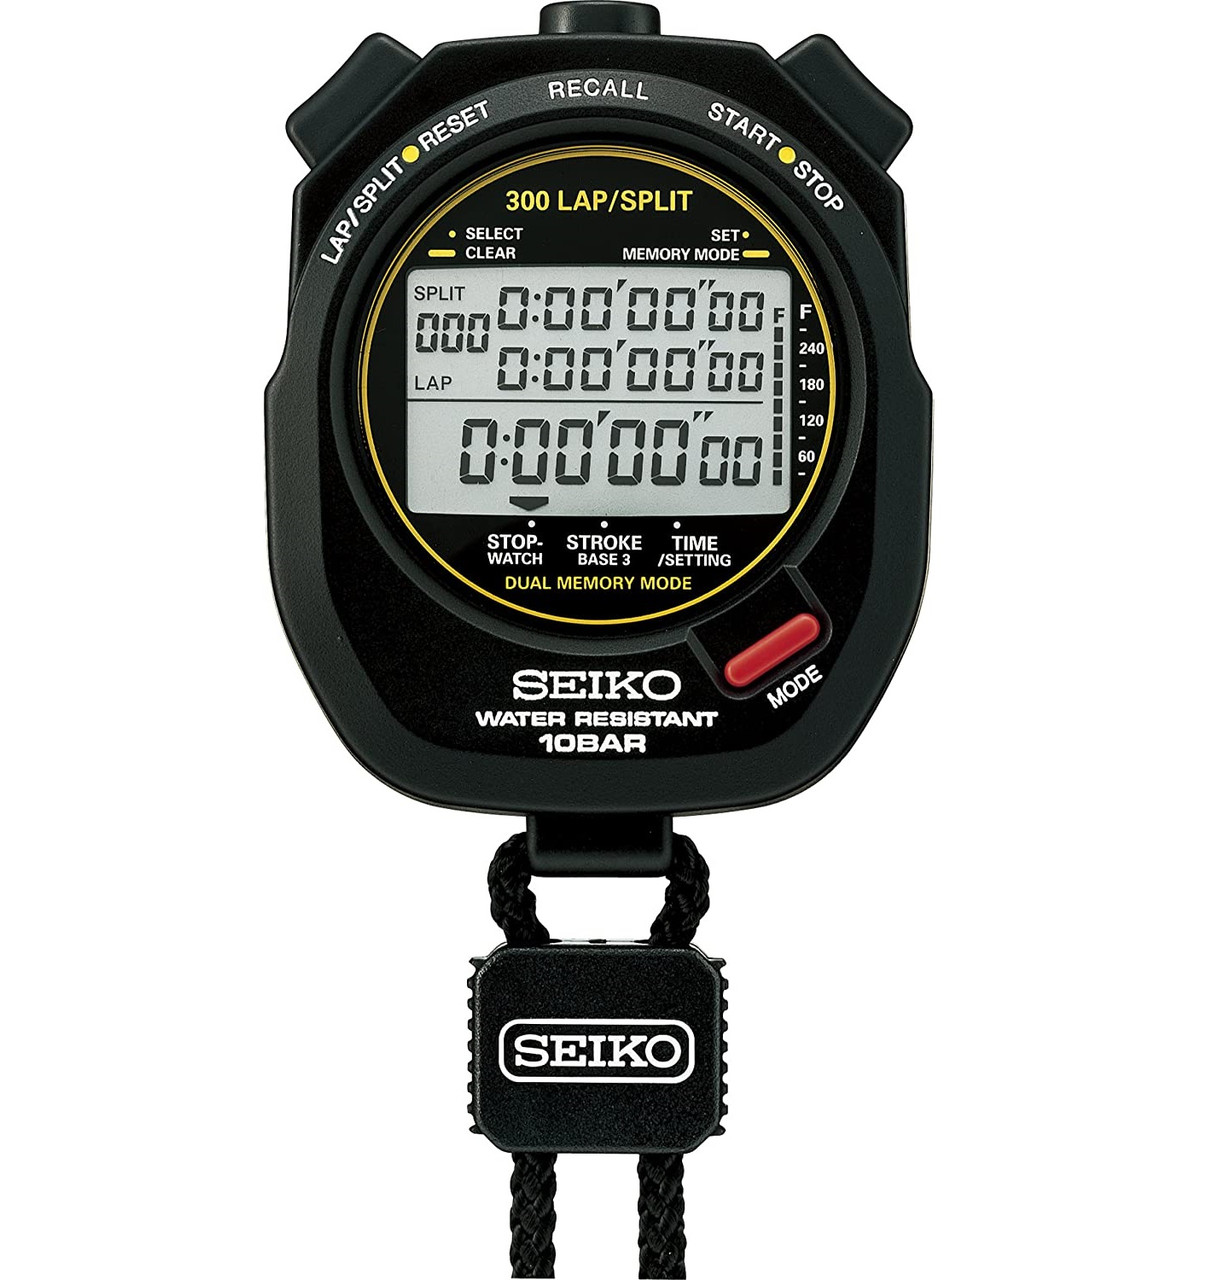 Seiko S141 300 Lap Memory Stopwatch for Aquatic Sports